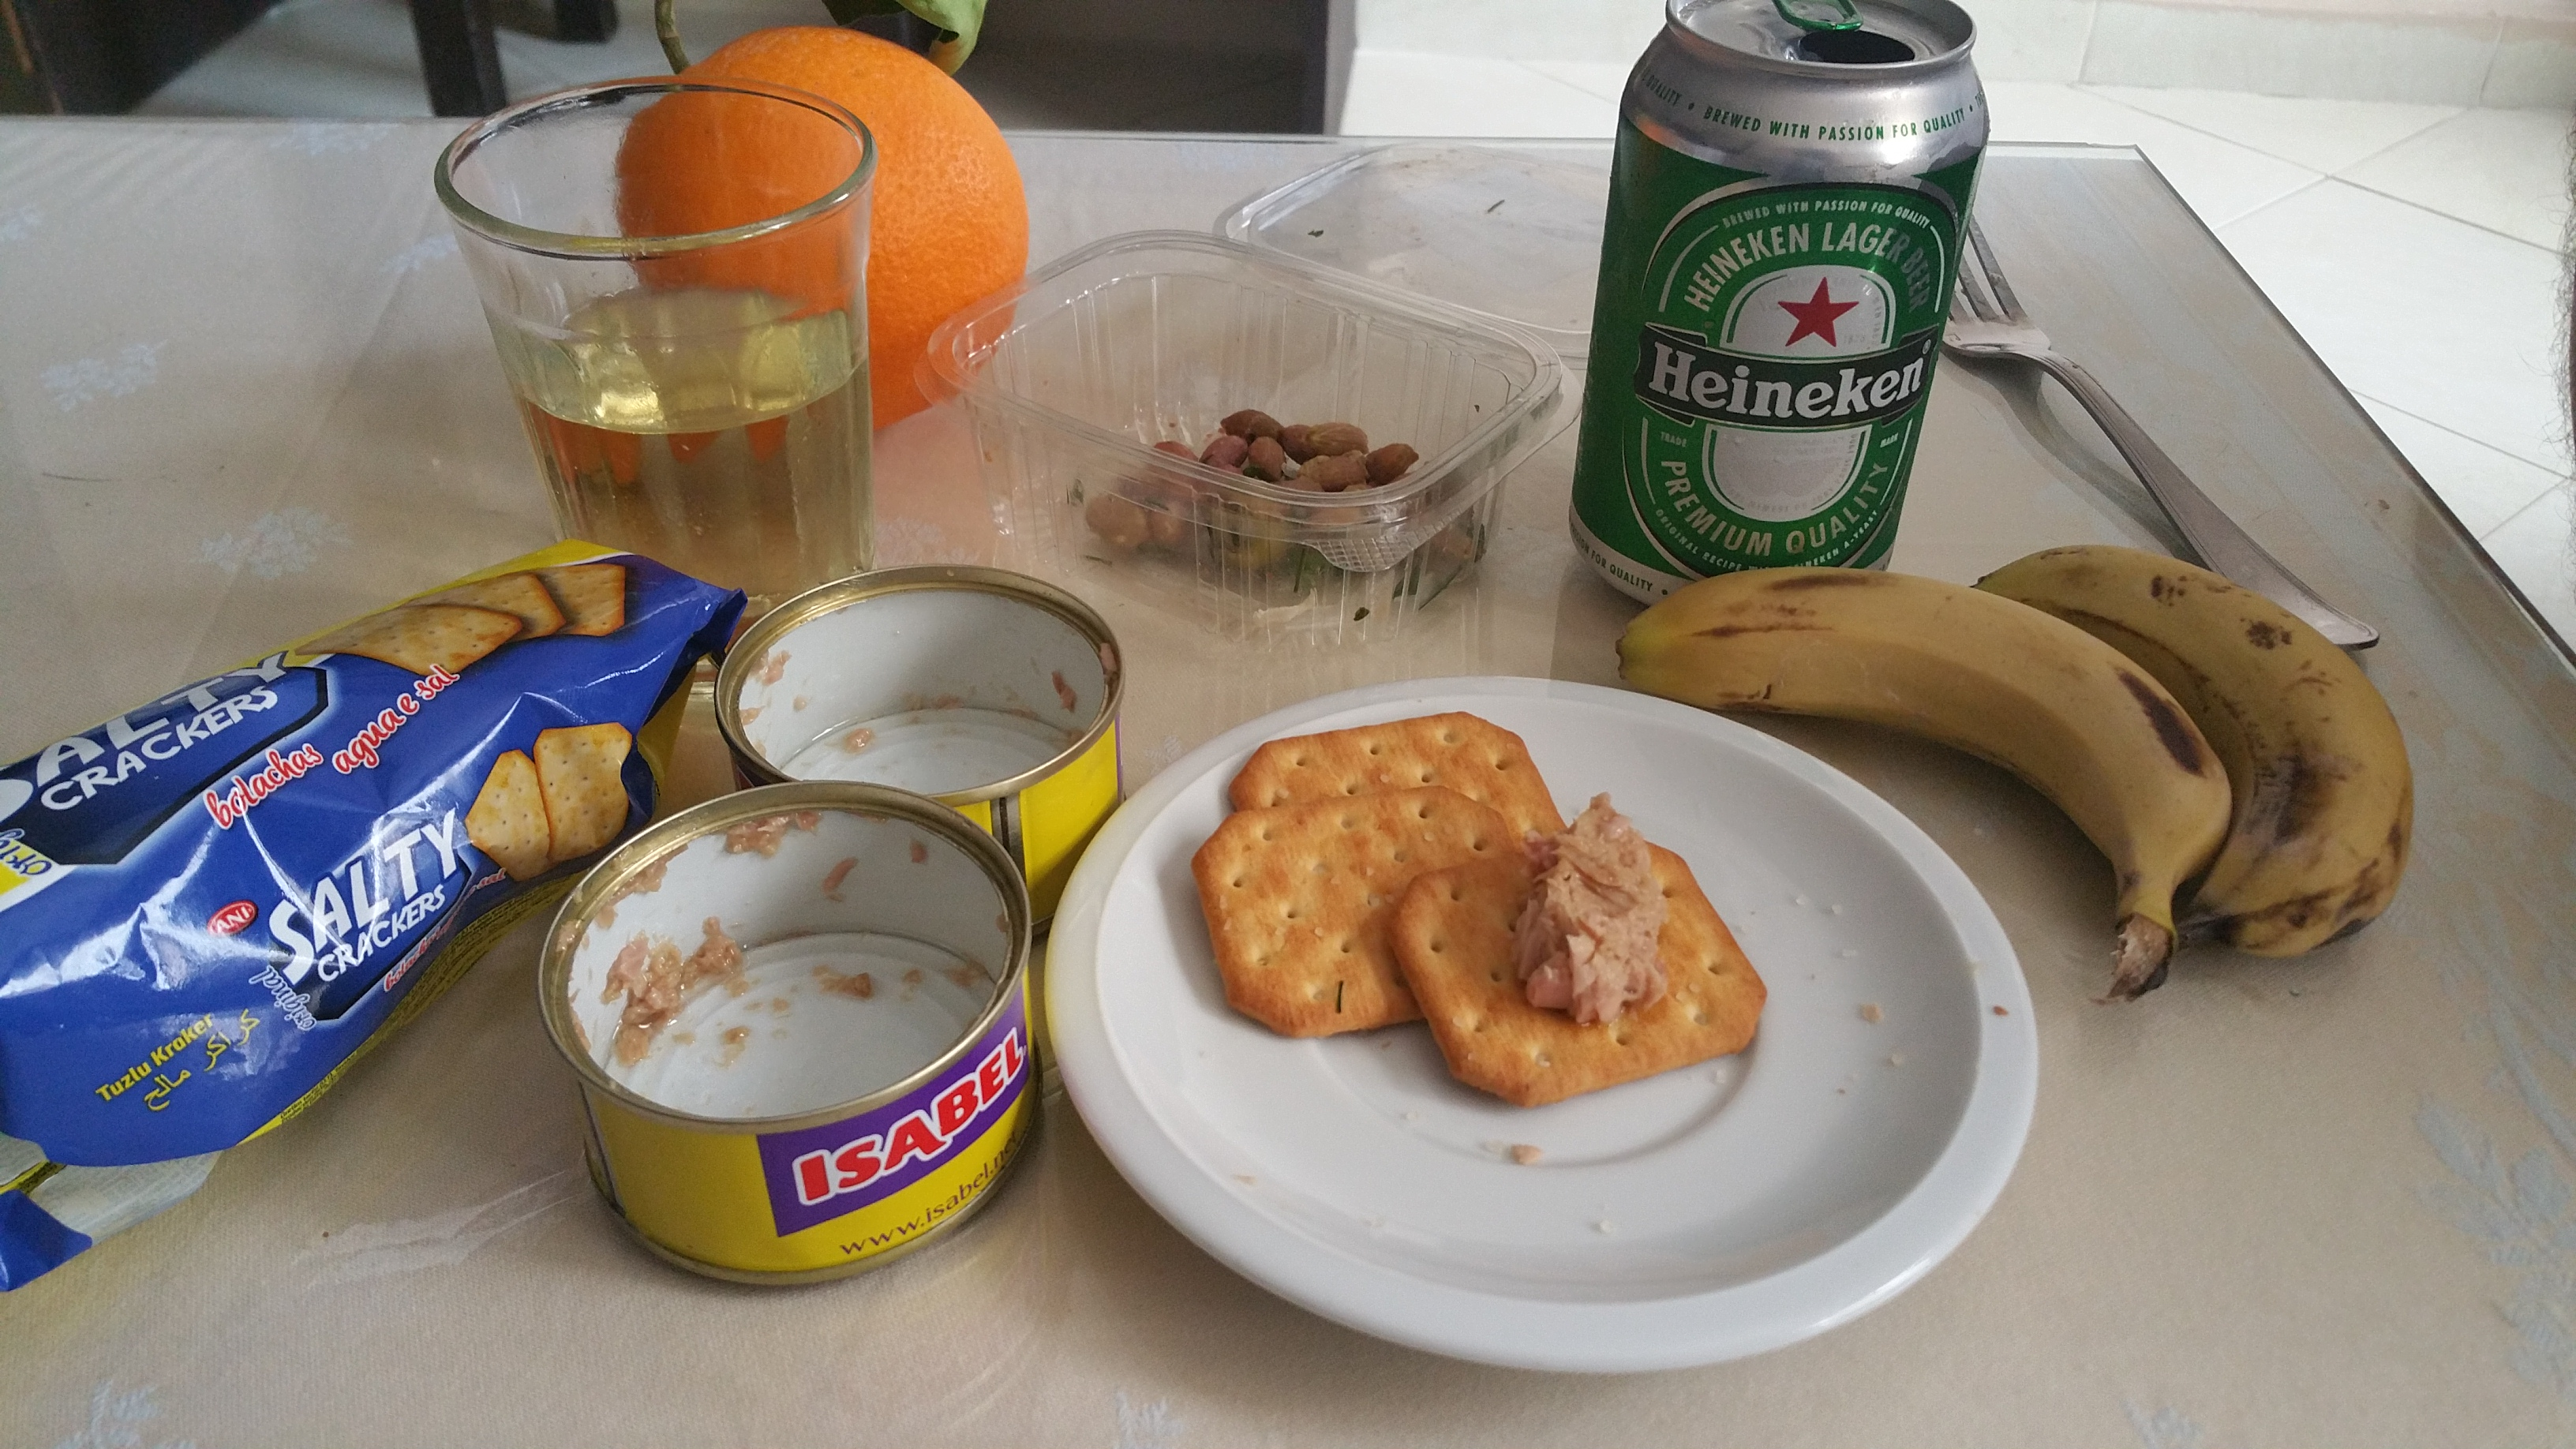 travelling larder, crackers, canned tuna, olives, bananas and an orange